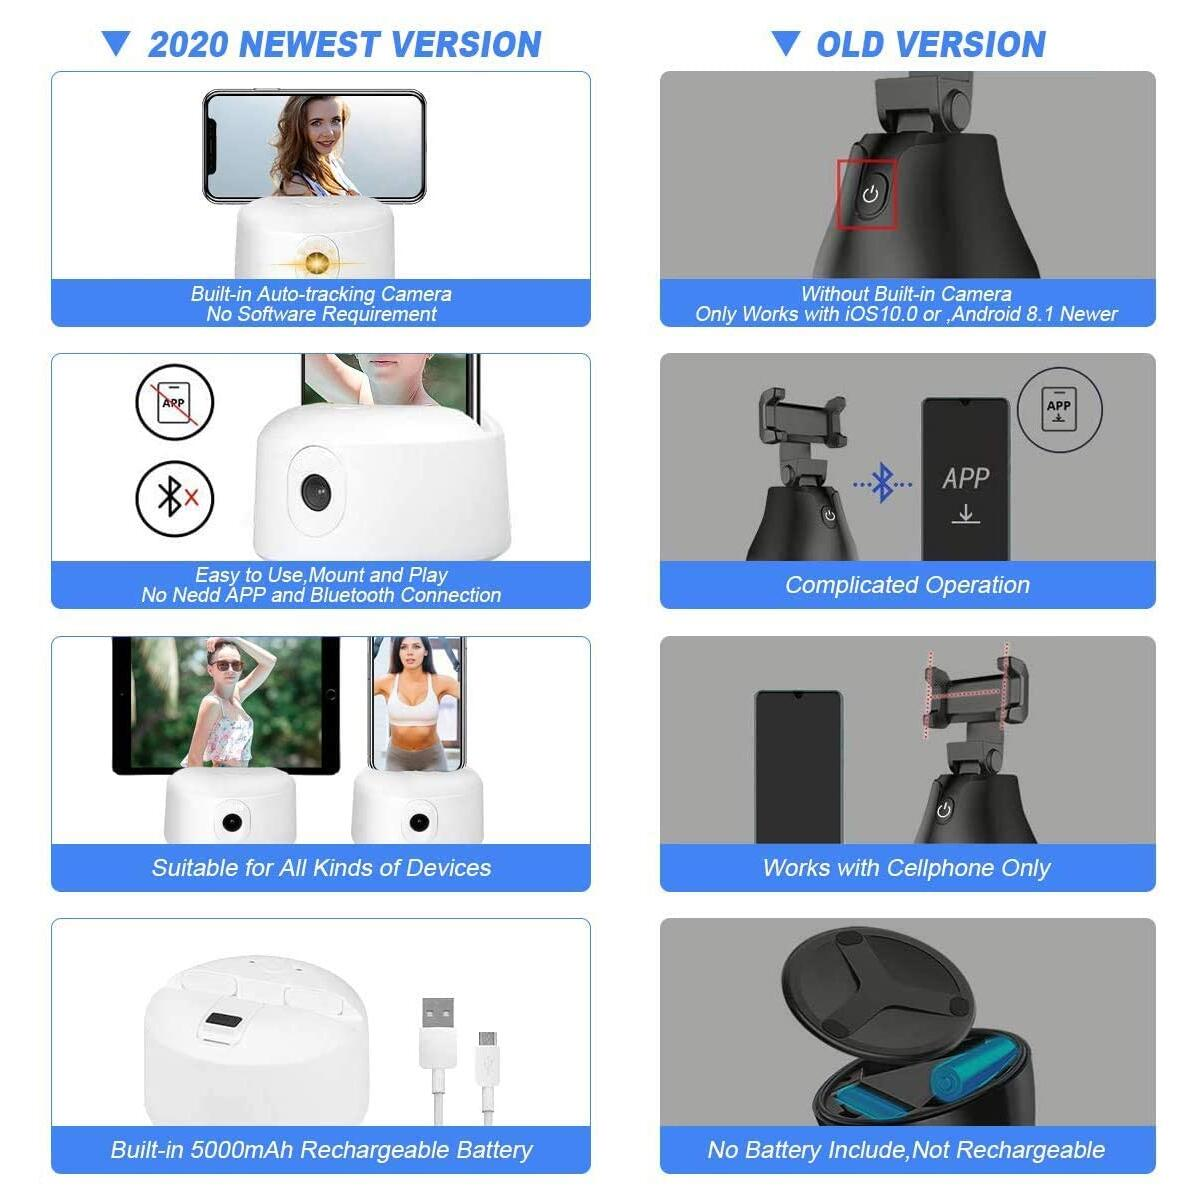 Selfie Stick, 360° Rotation Auto Tracing【NO APP Required】,Hands-Free for Body & Action Auto-Tracking,A 360 Camera Mount Lasting Long Time for Vlog,Tiktok Alive,Video Streaming,Families Show Recording